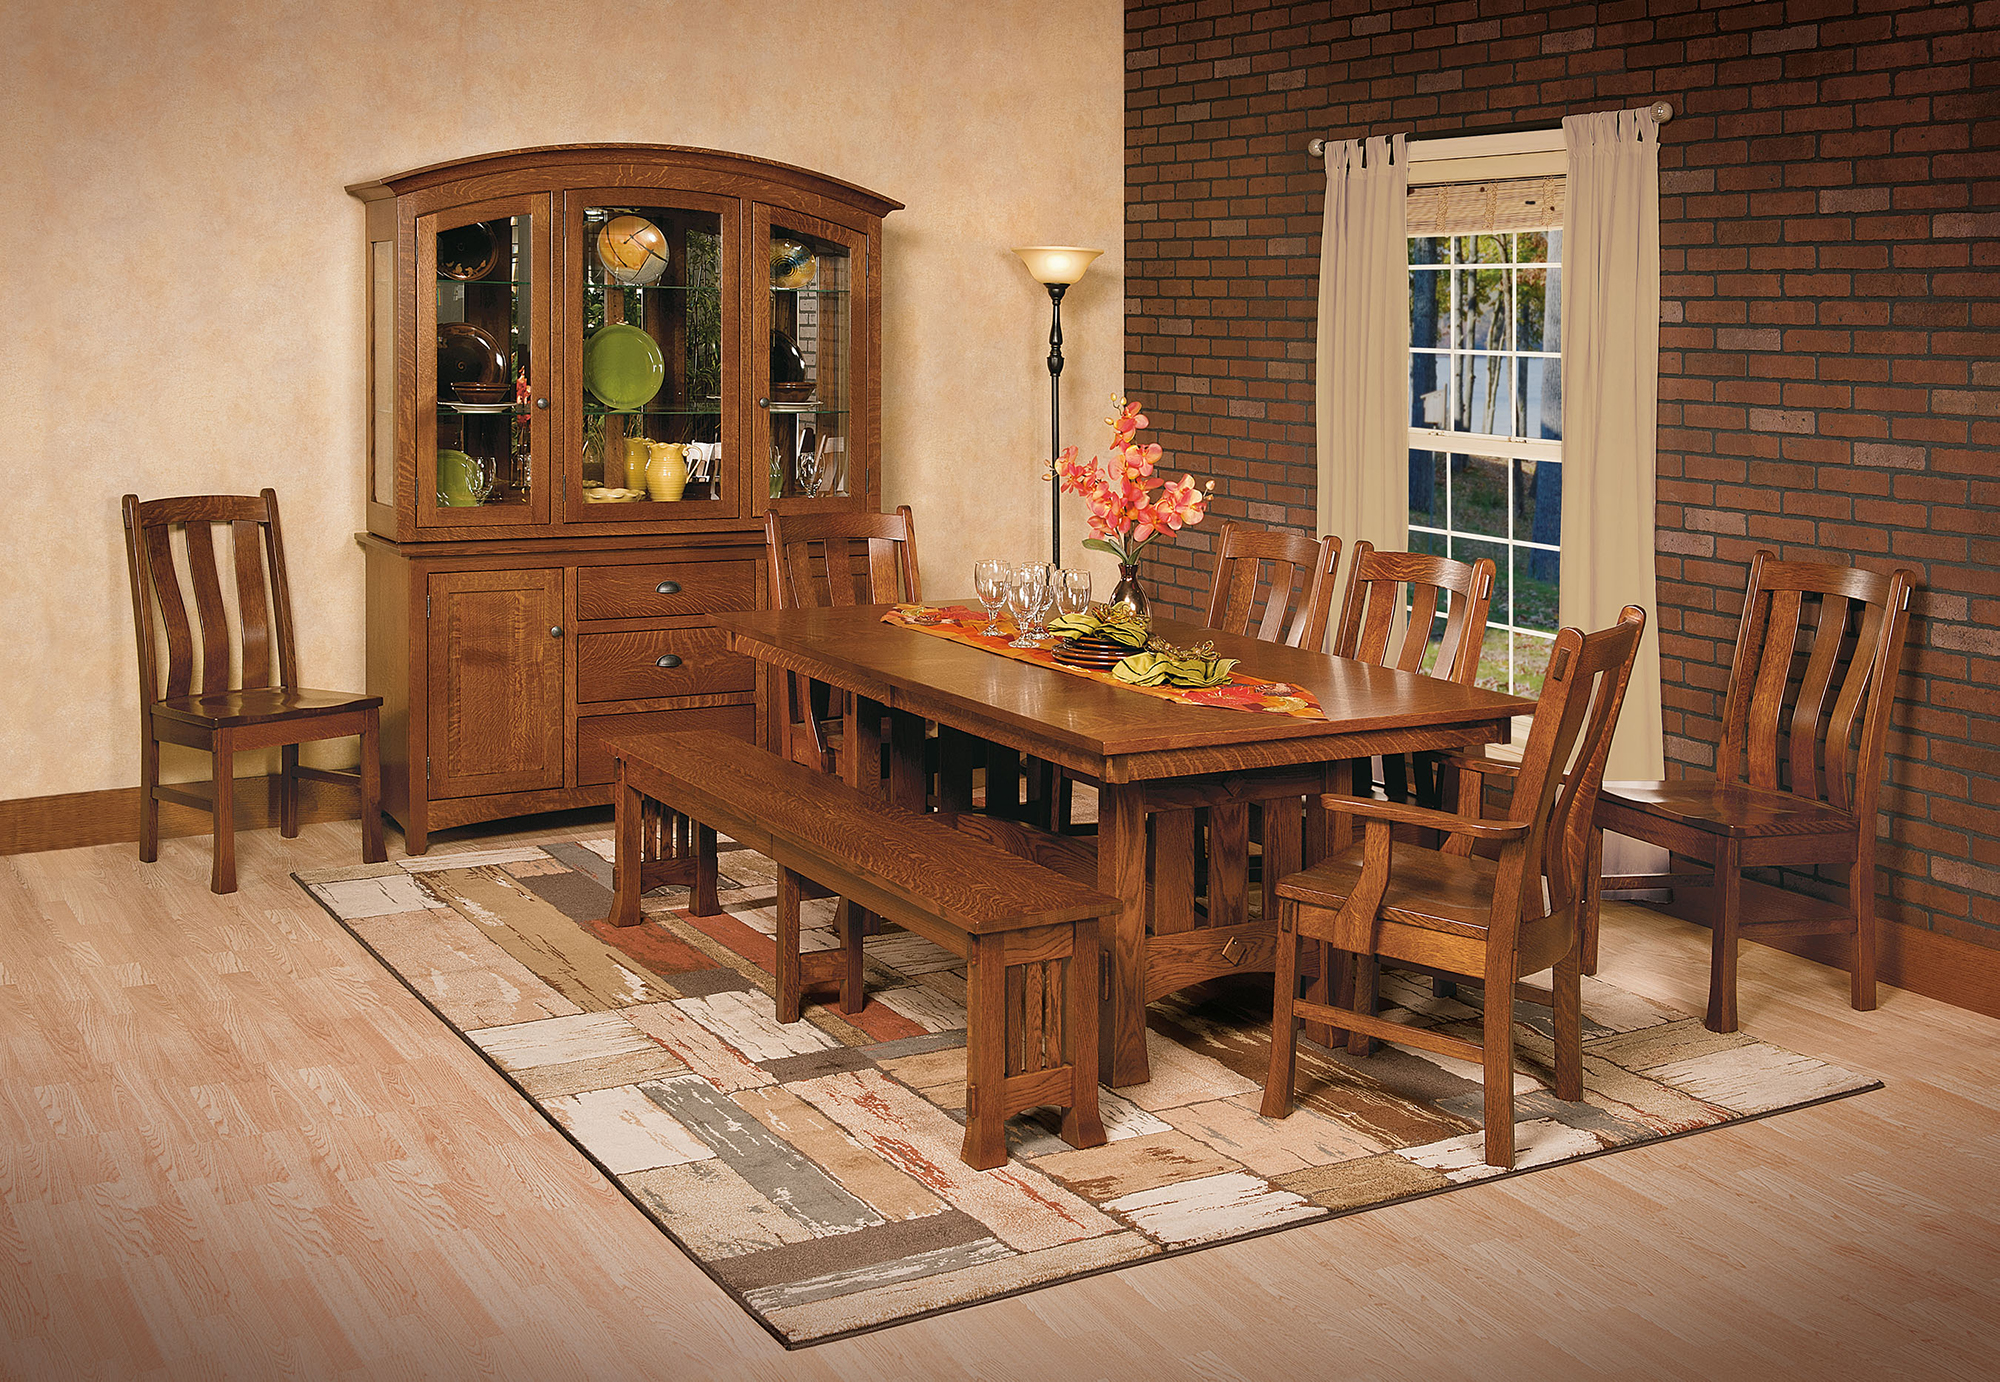 mission dining room sets | Olde Century Mission Dining Set | Amish Olde Century ...